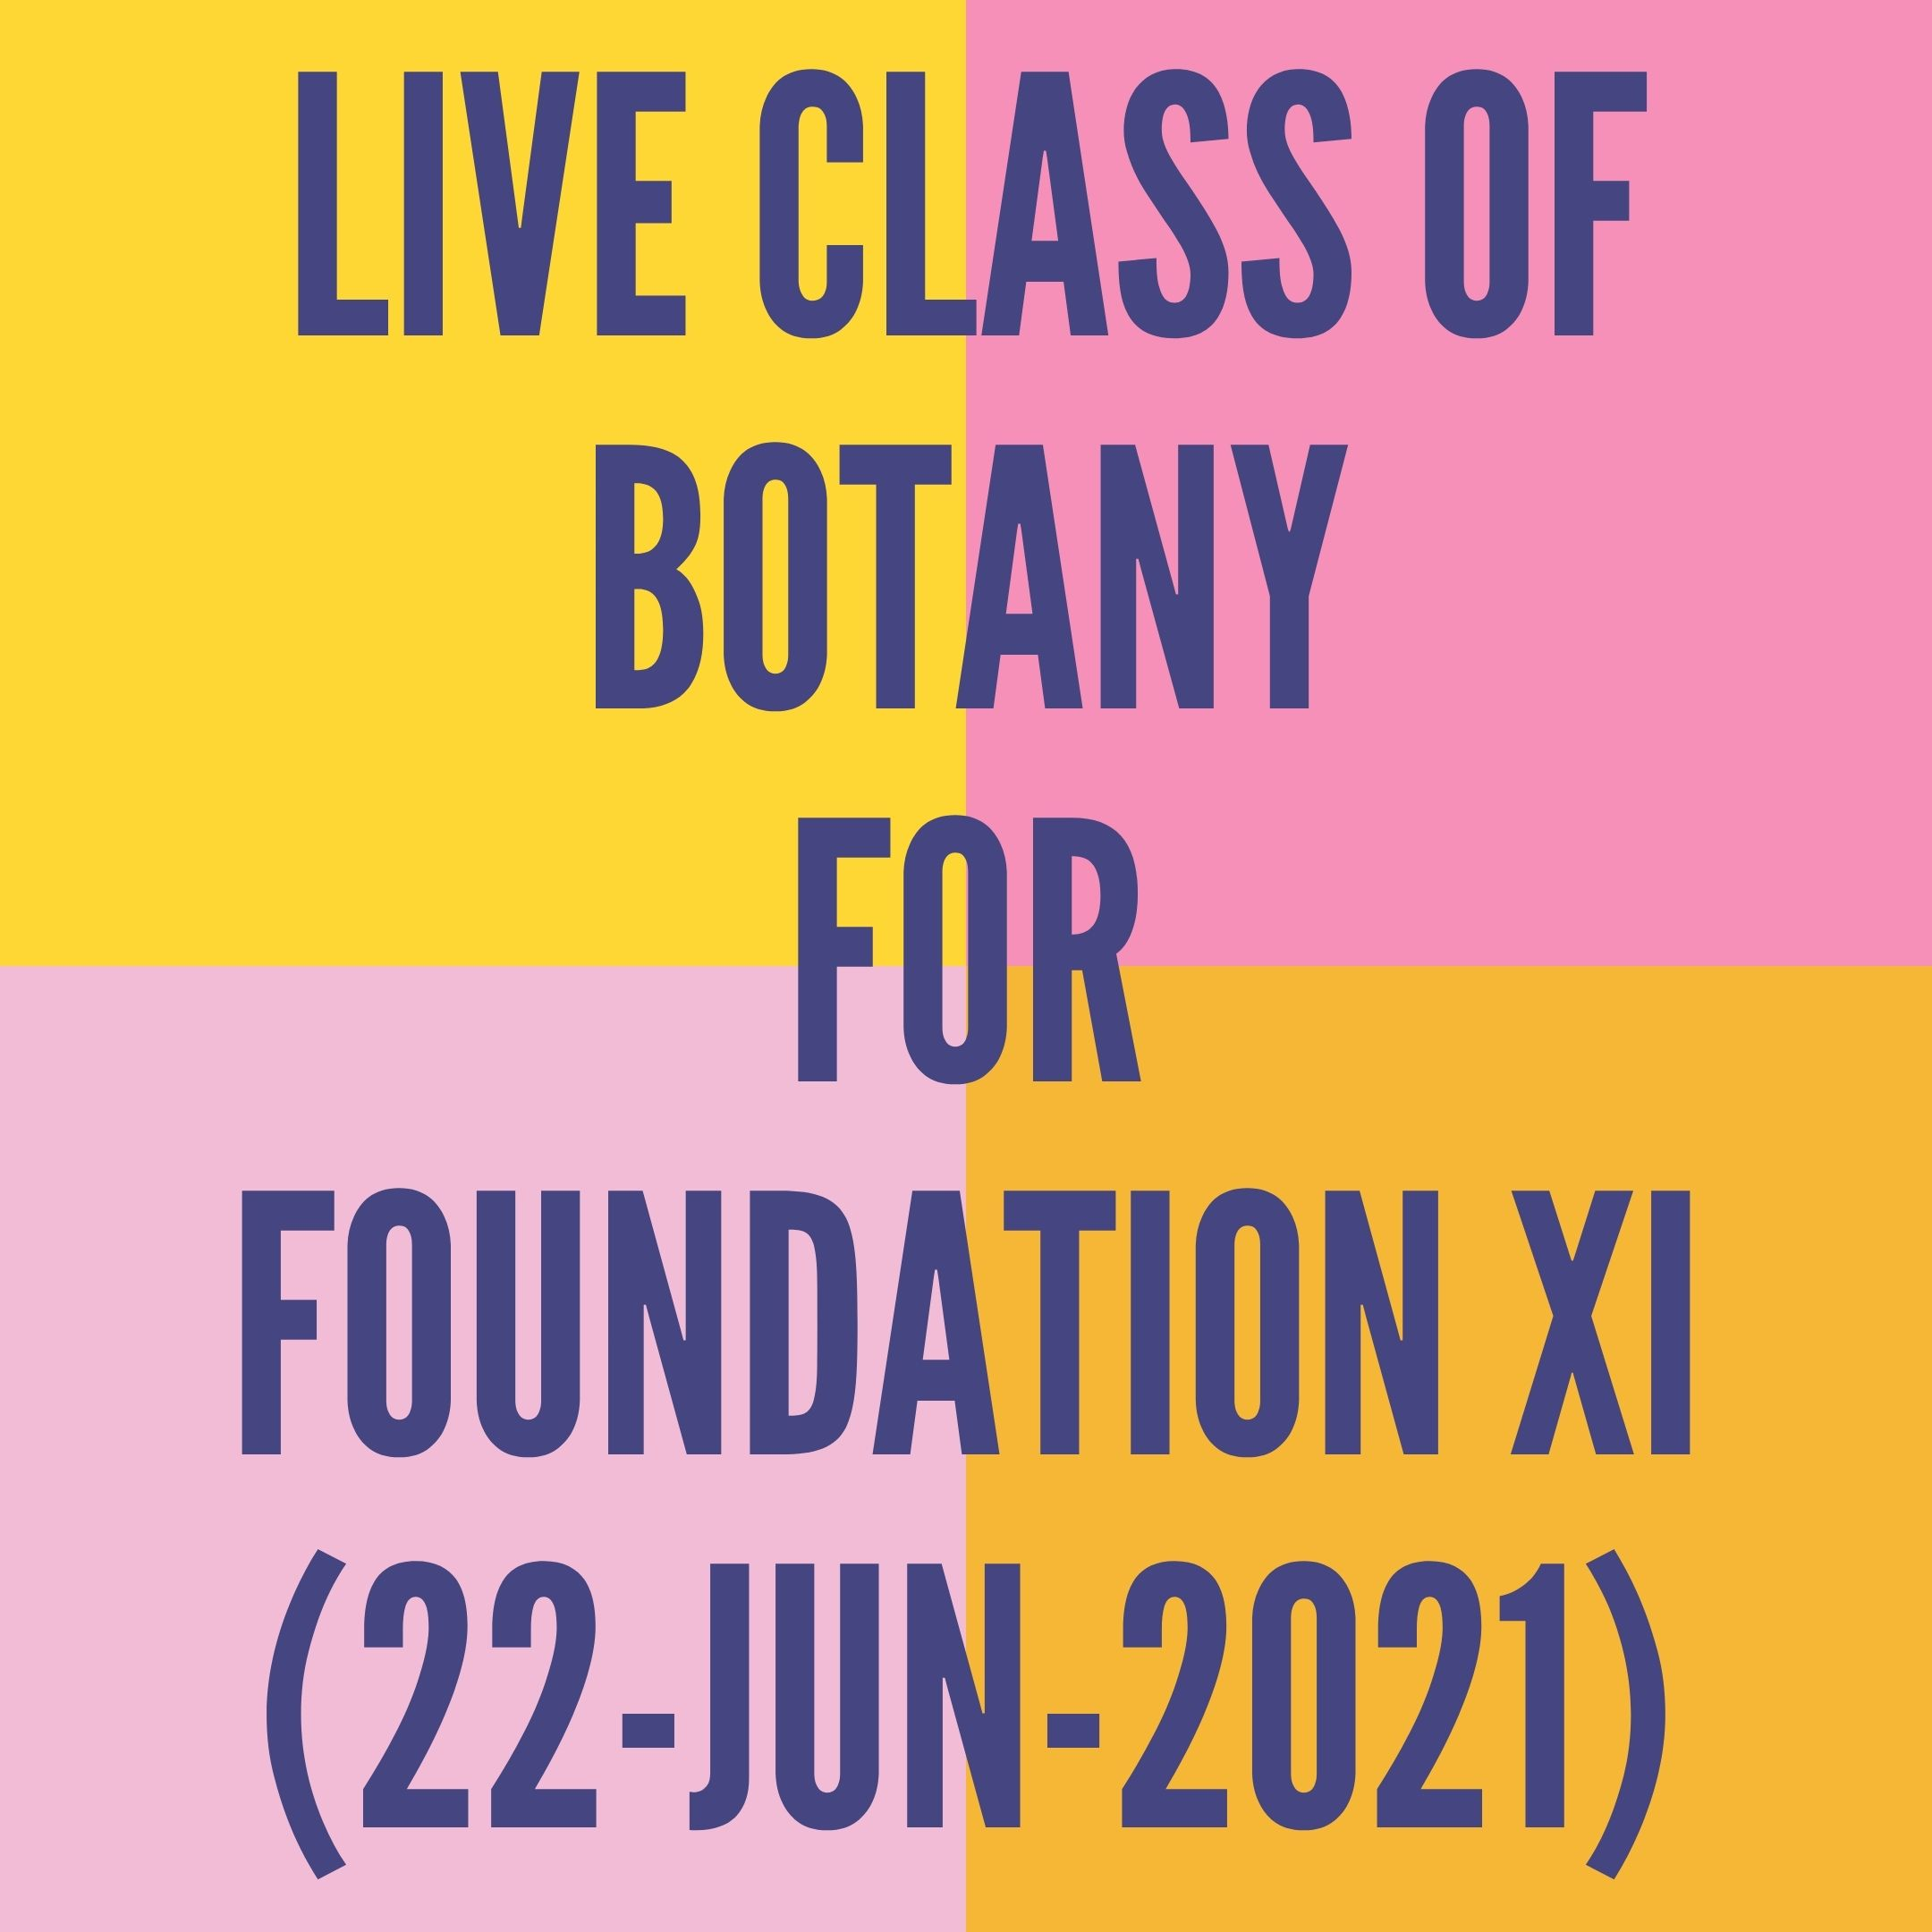 LIVE CLASS OF BOTANY FOR FOUNDATION XI (22-JUN-2021) CELL-THE UNIT OF LIFE